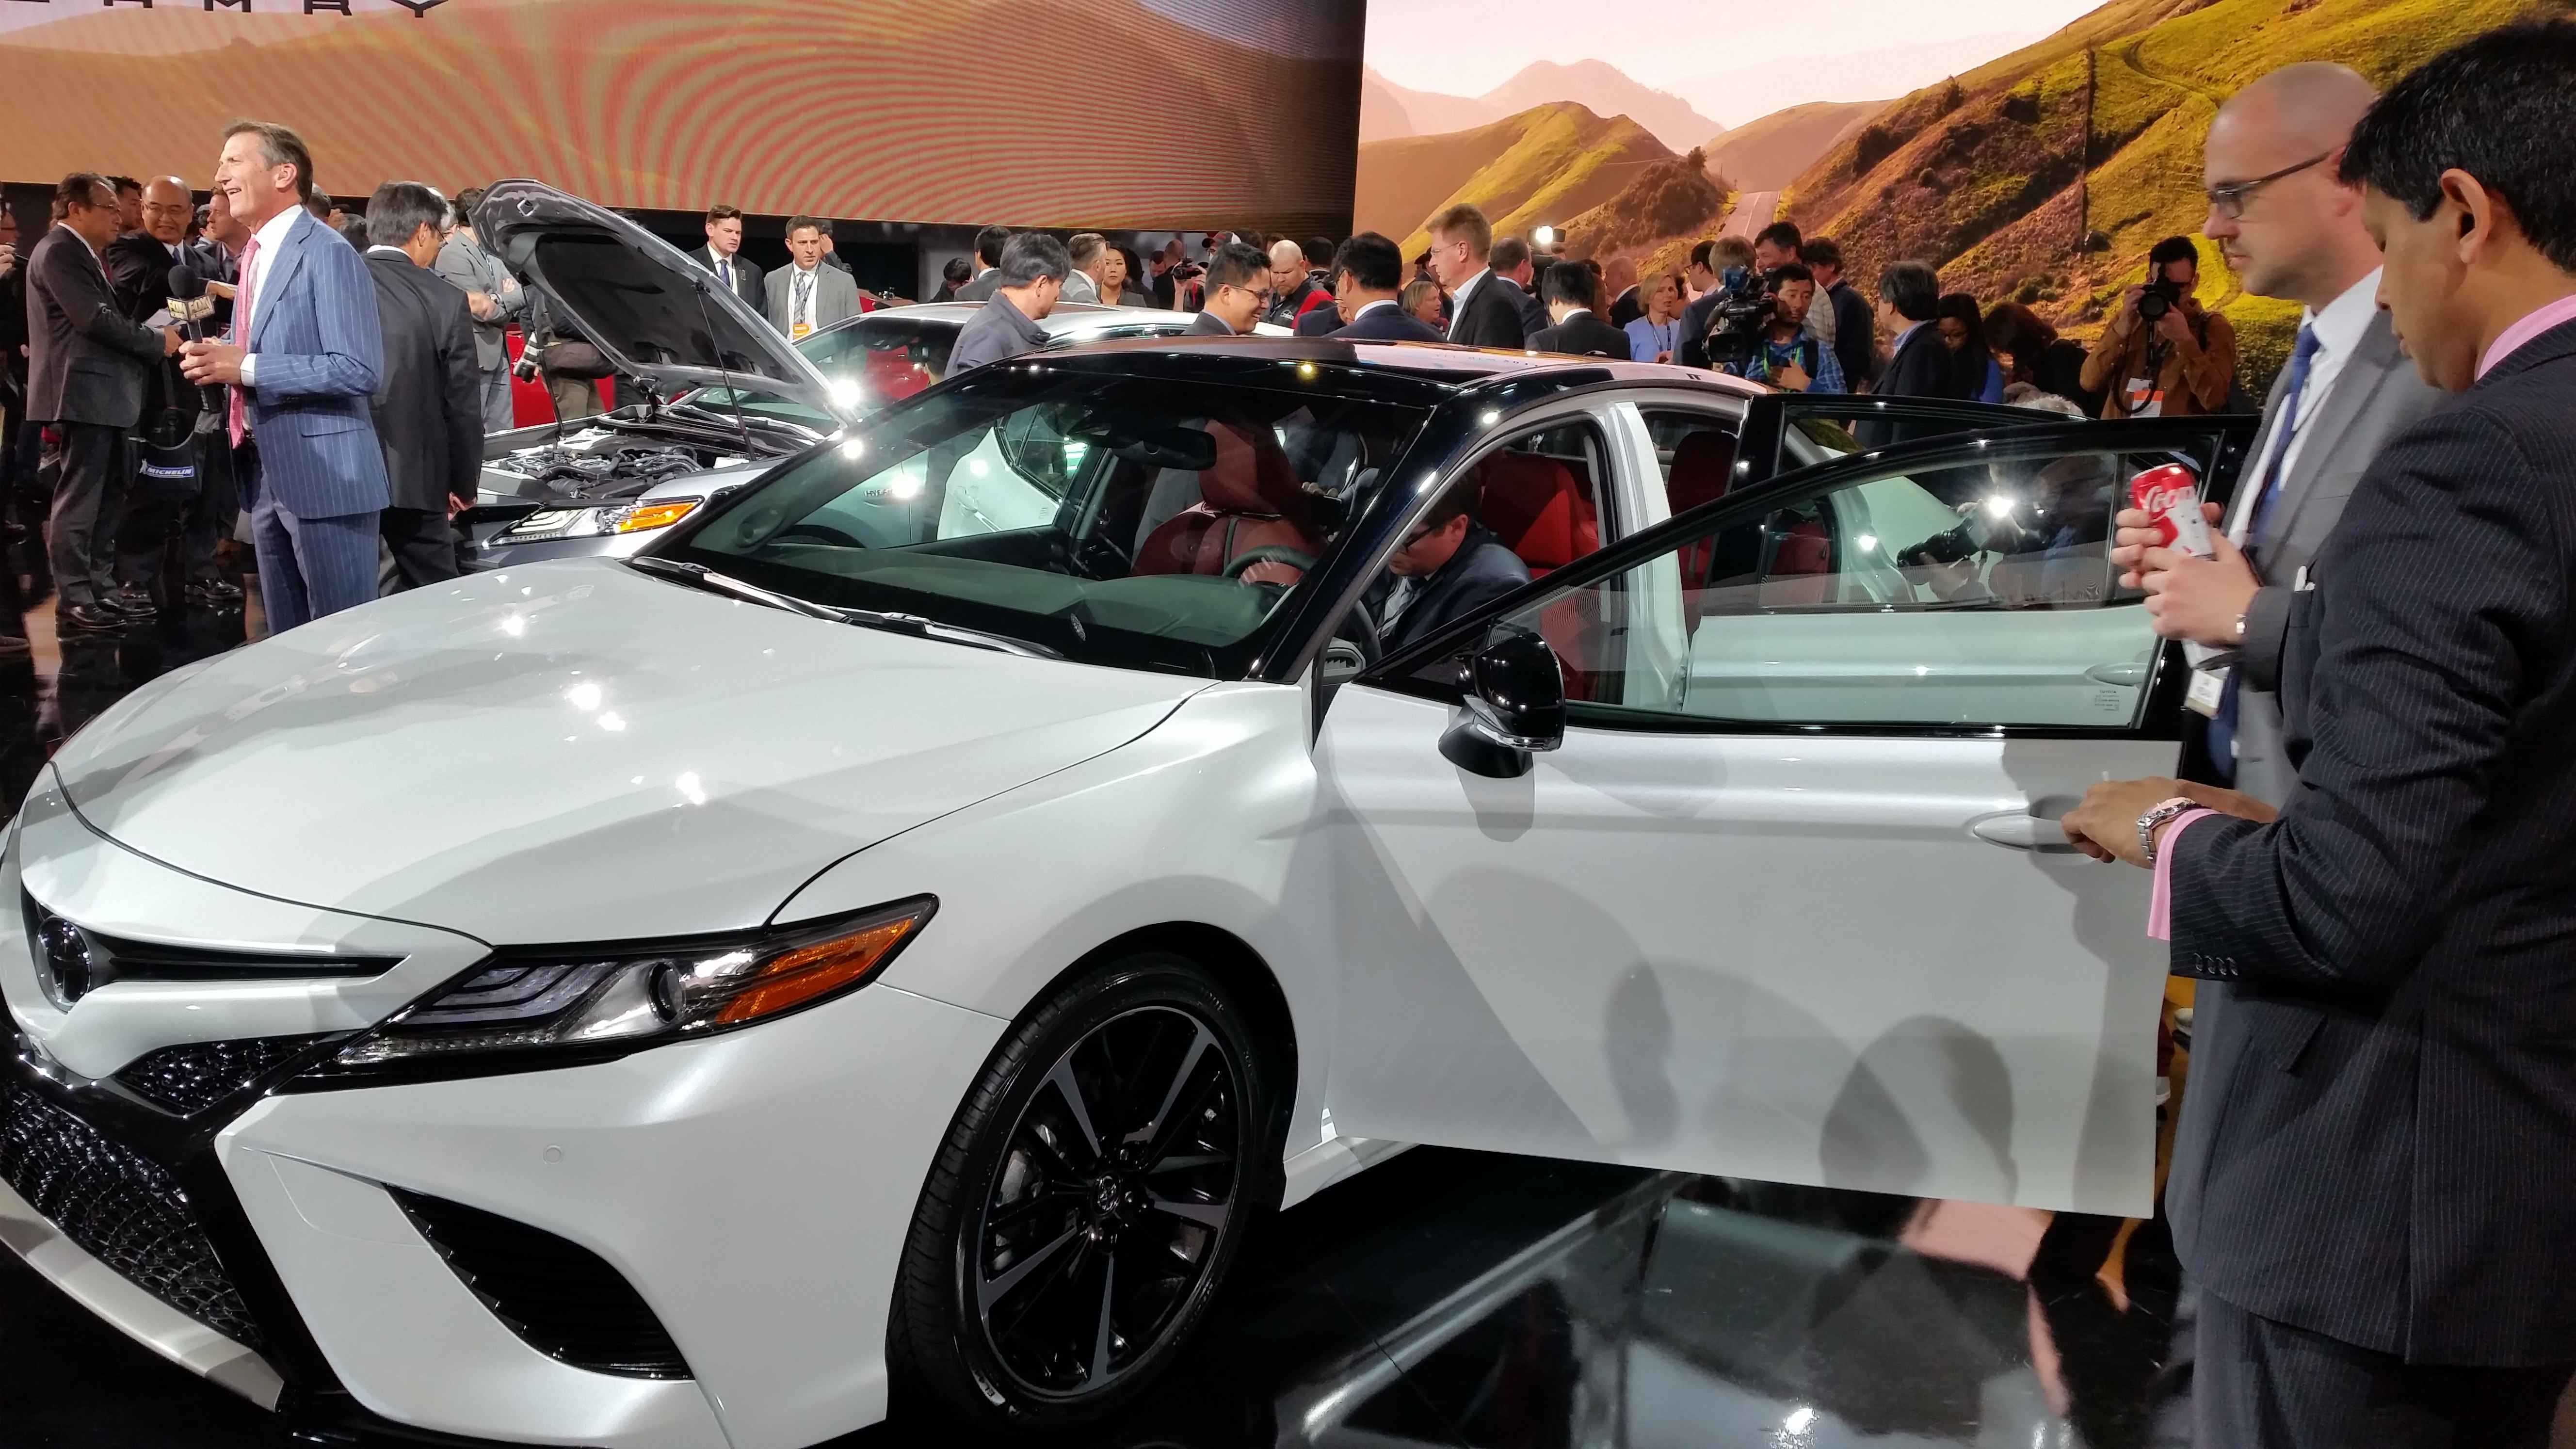 The Two Tone Option For 2018 Toyota Camry Is Shown John Huetter Repairer Driven News